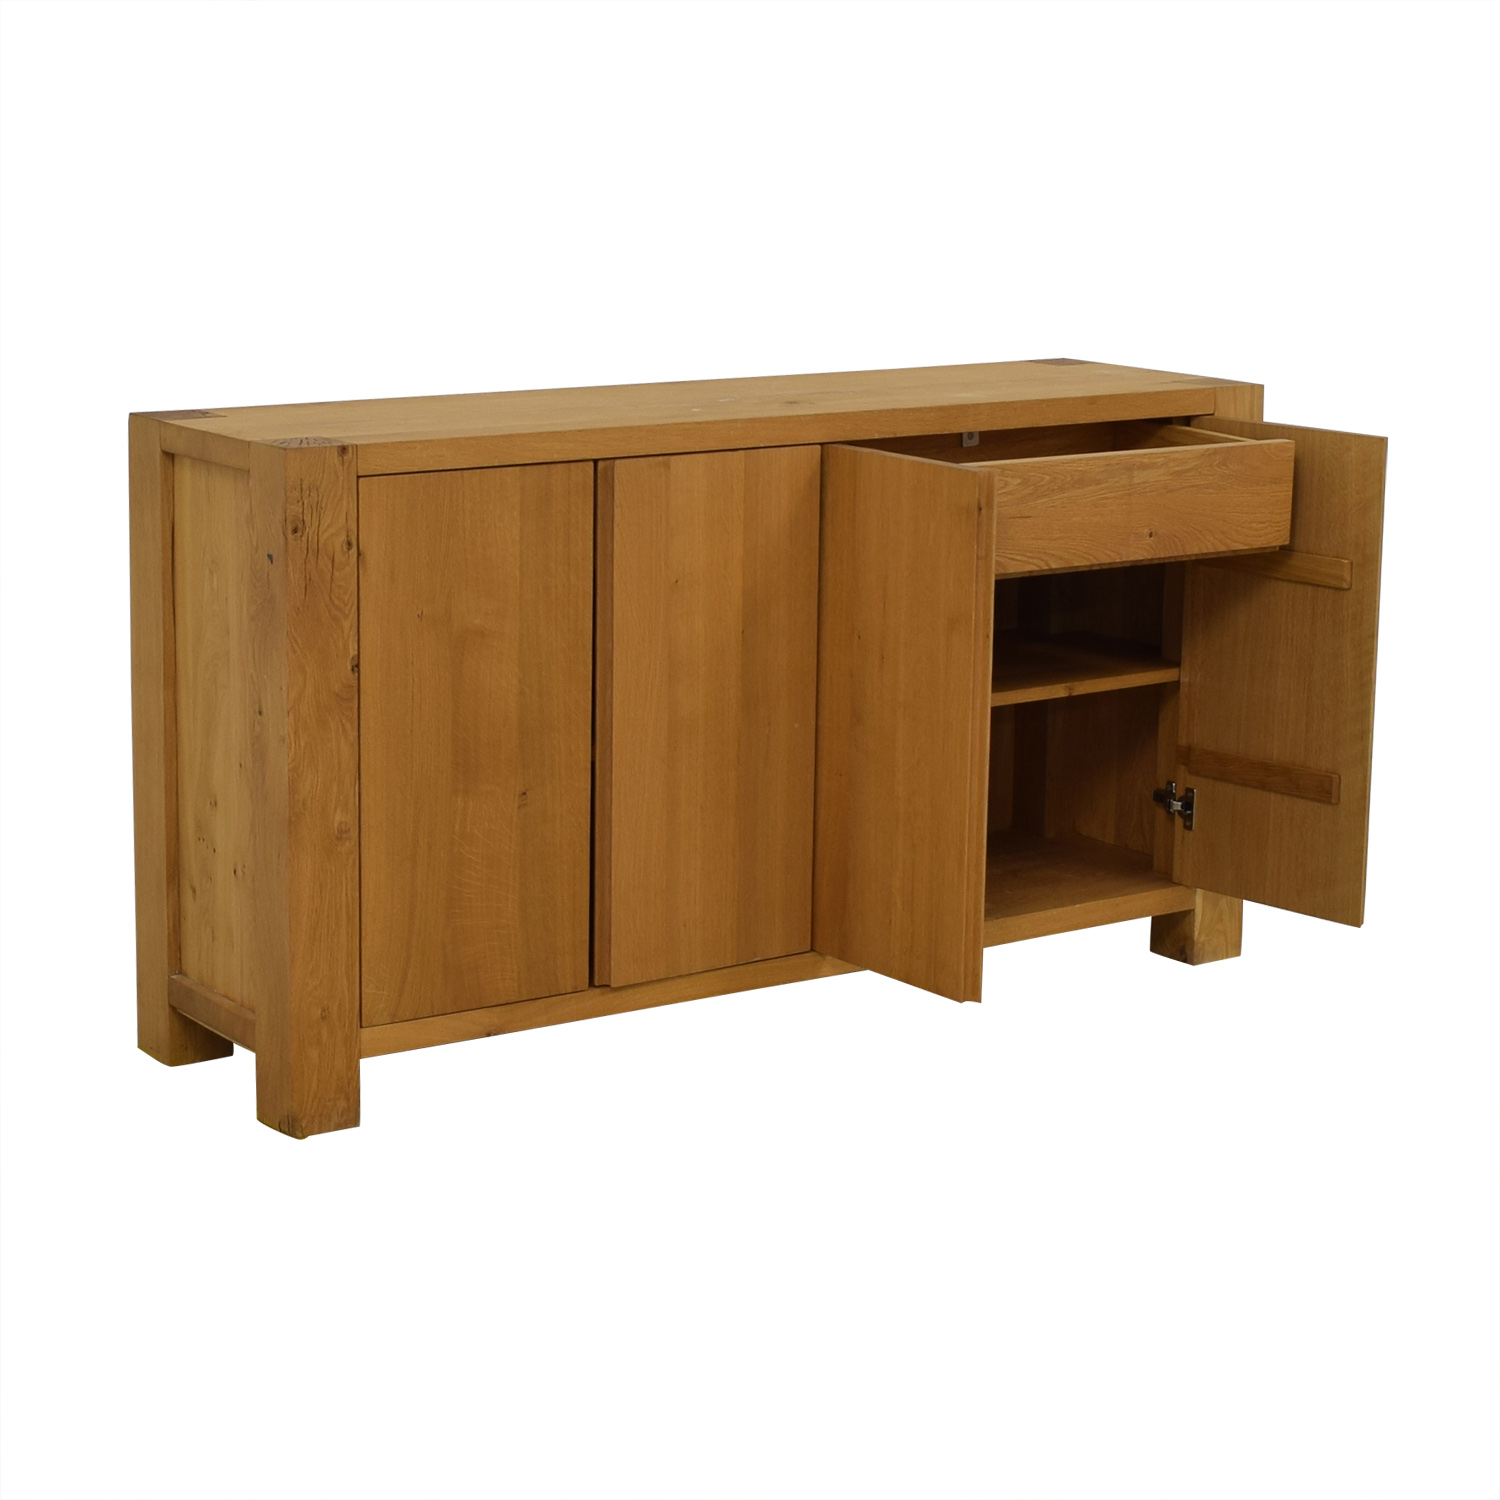 Crate & Barrel Crate & Barrel Big Sur Sideboard Cabinets & Sideboards